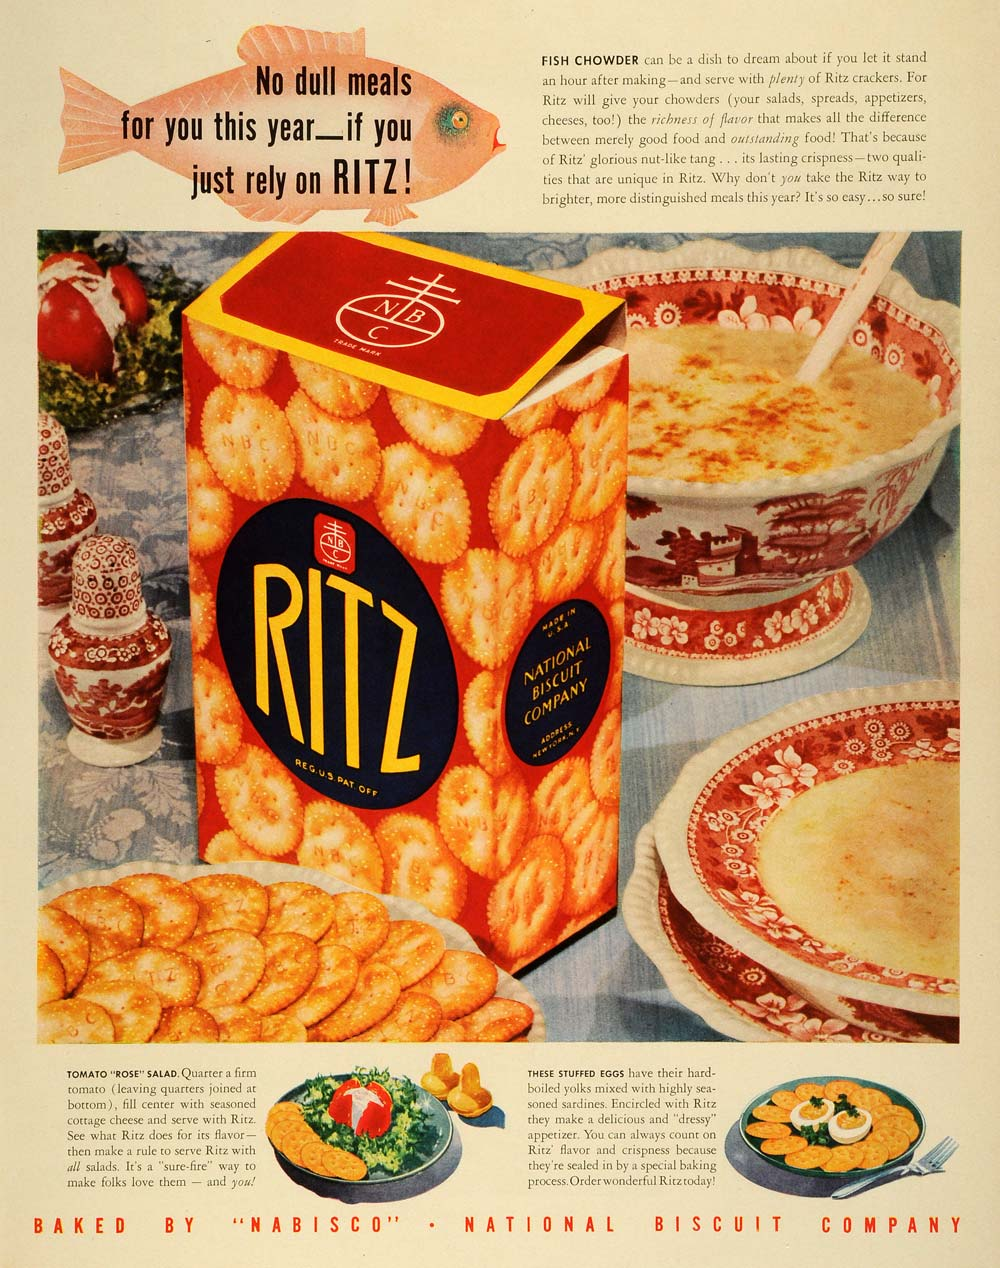 1941 Ad National Biscuit Co Ritz Nabisco Fish Chowder NBC China Set LF4